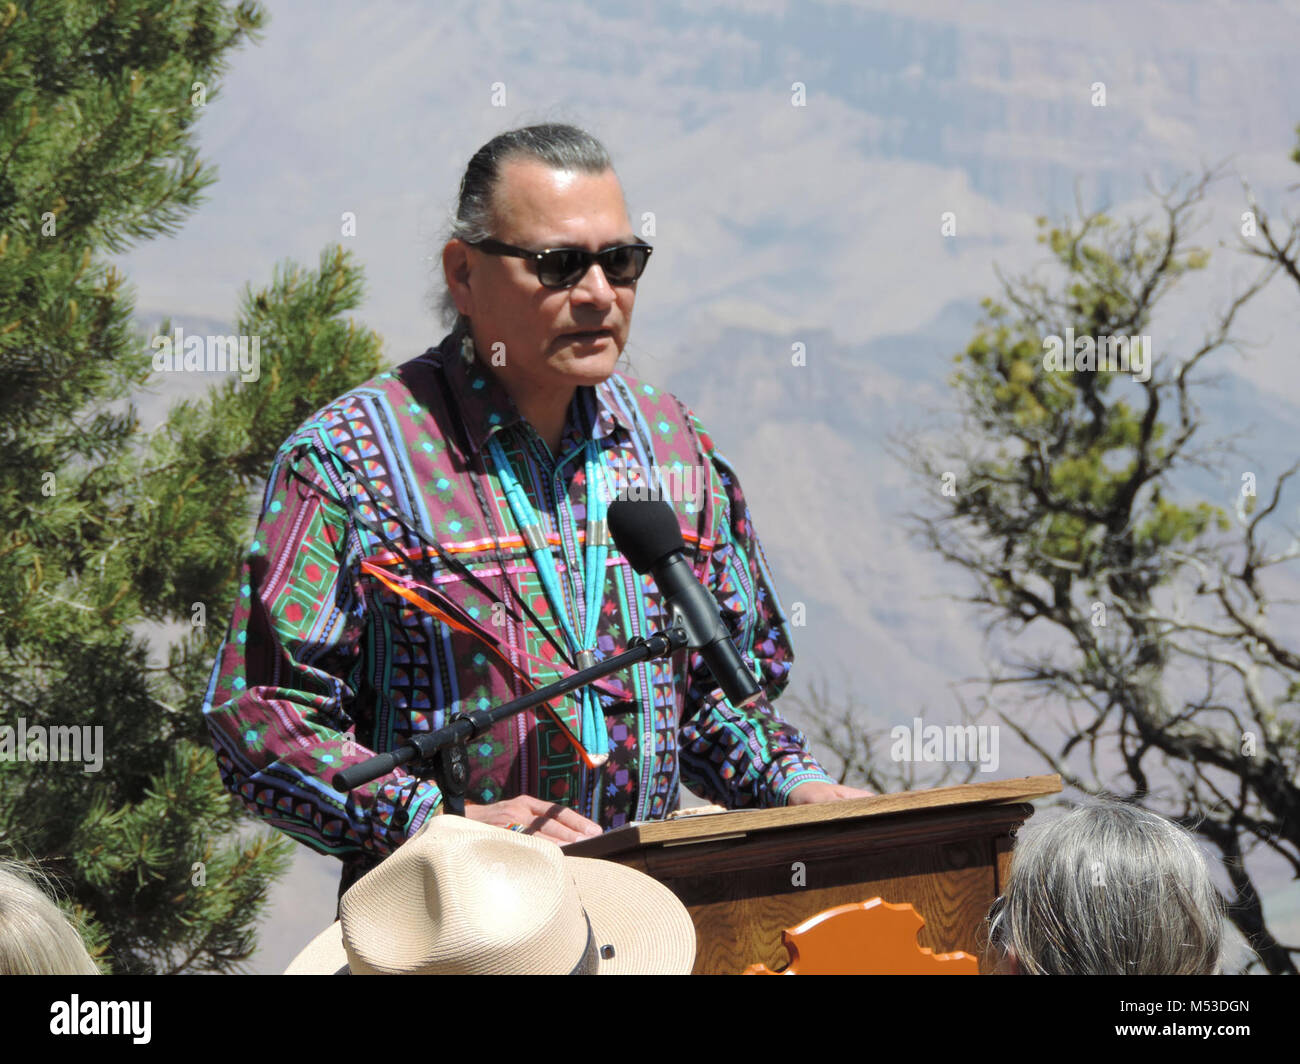 DV Rededication May. Desert View Rededication - May 22, 2016  Ed Hall, Transportation Specialist/Tourism Coordinator, Stock Photo